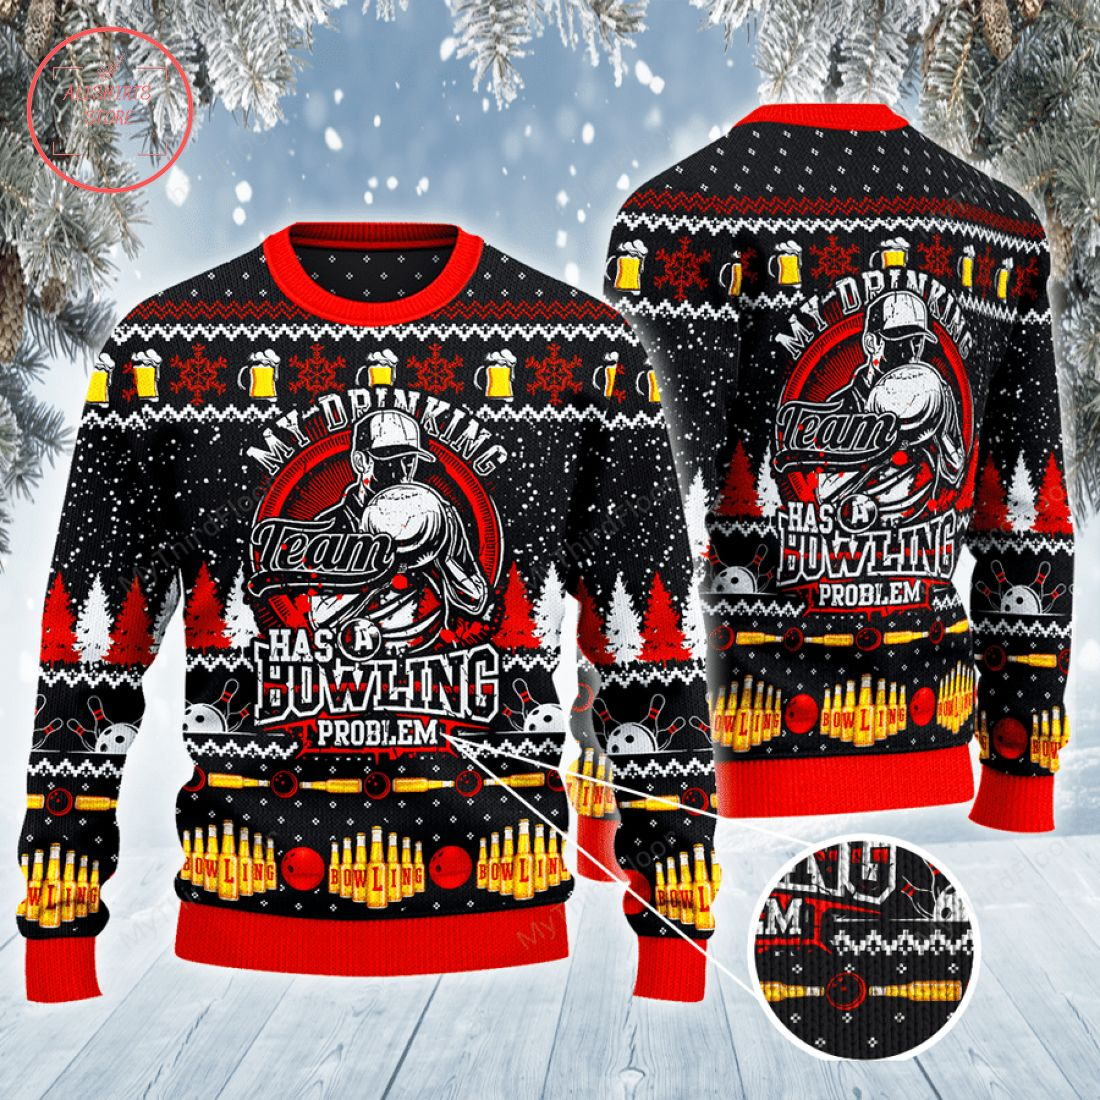 My Drinking Team Has A Bowling Problem Ugly Christmas Sweater